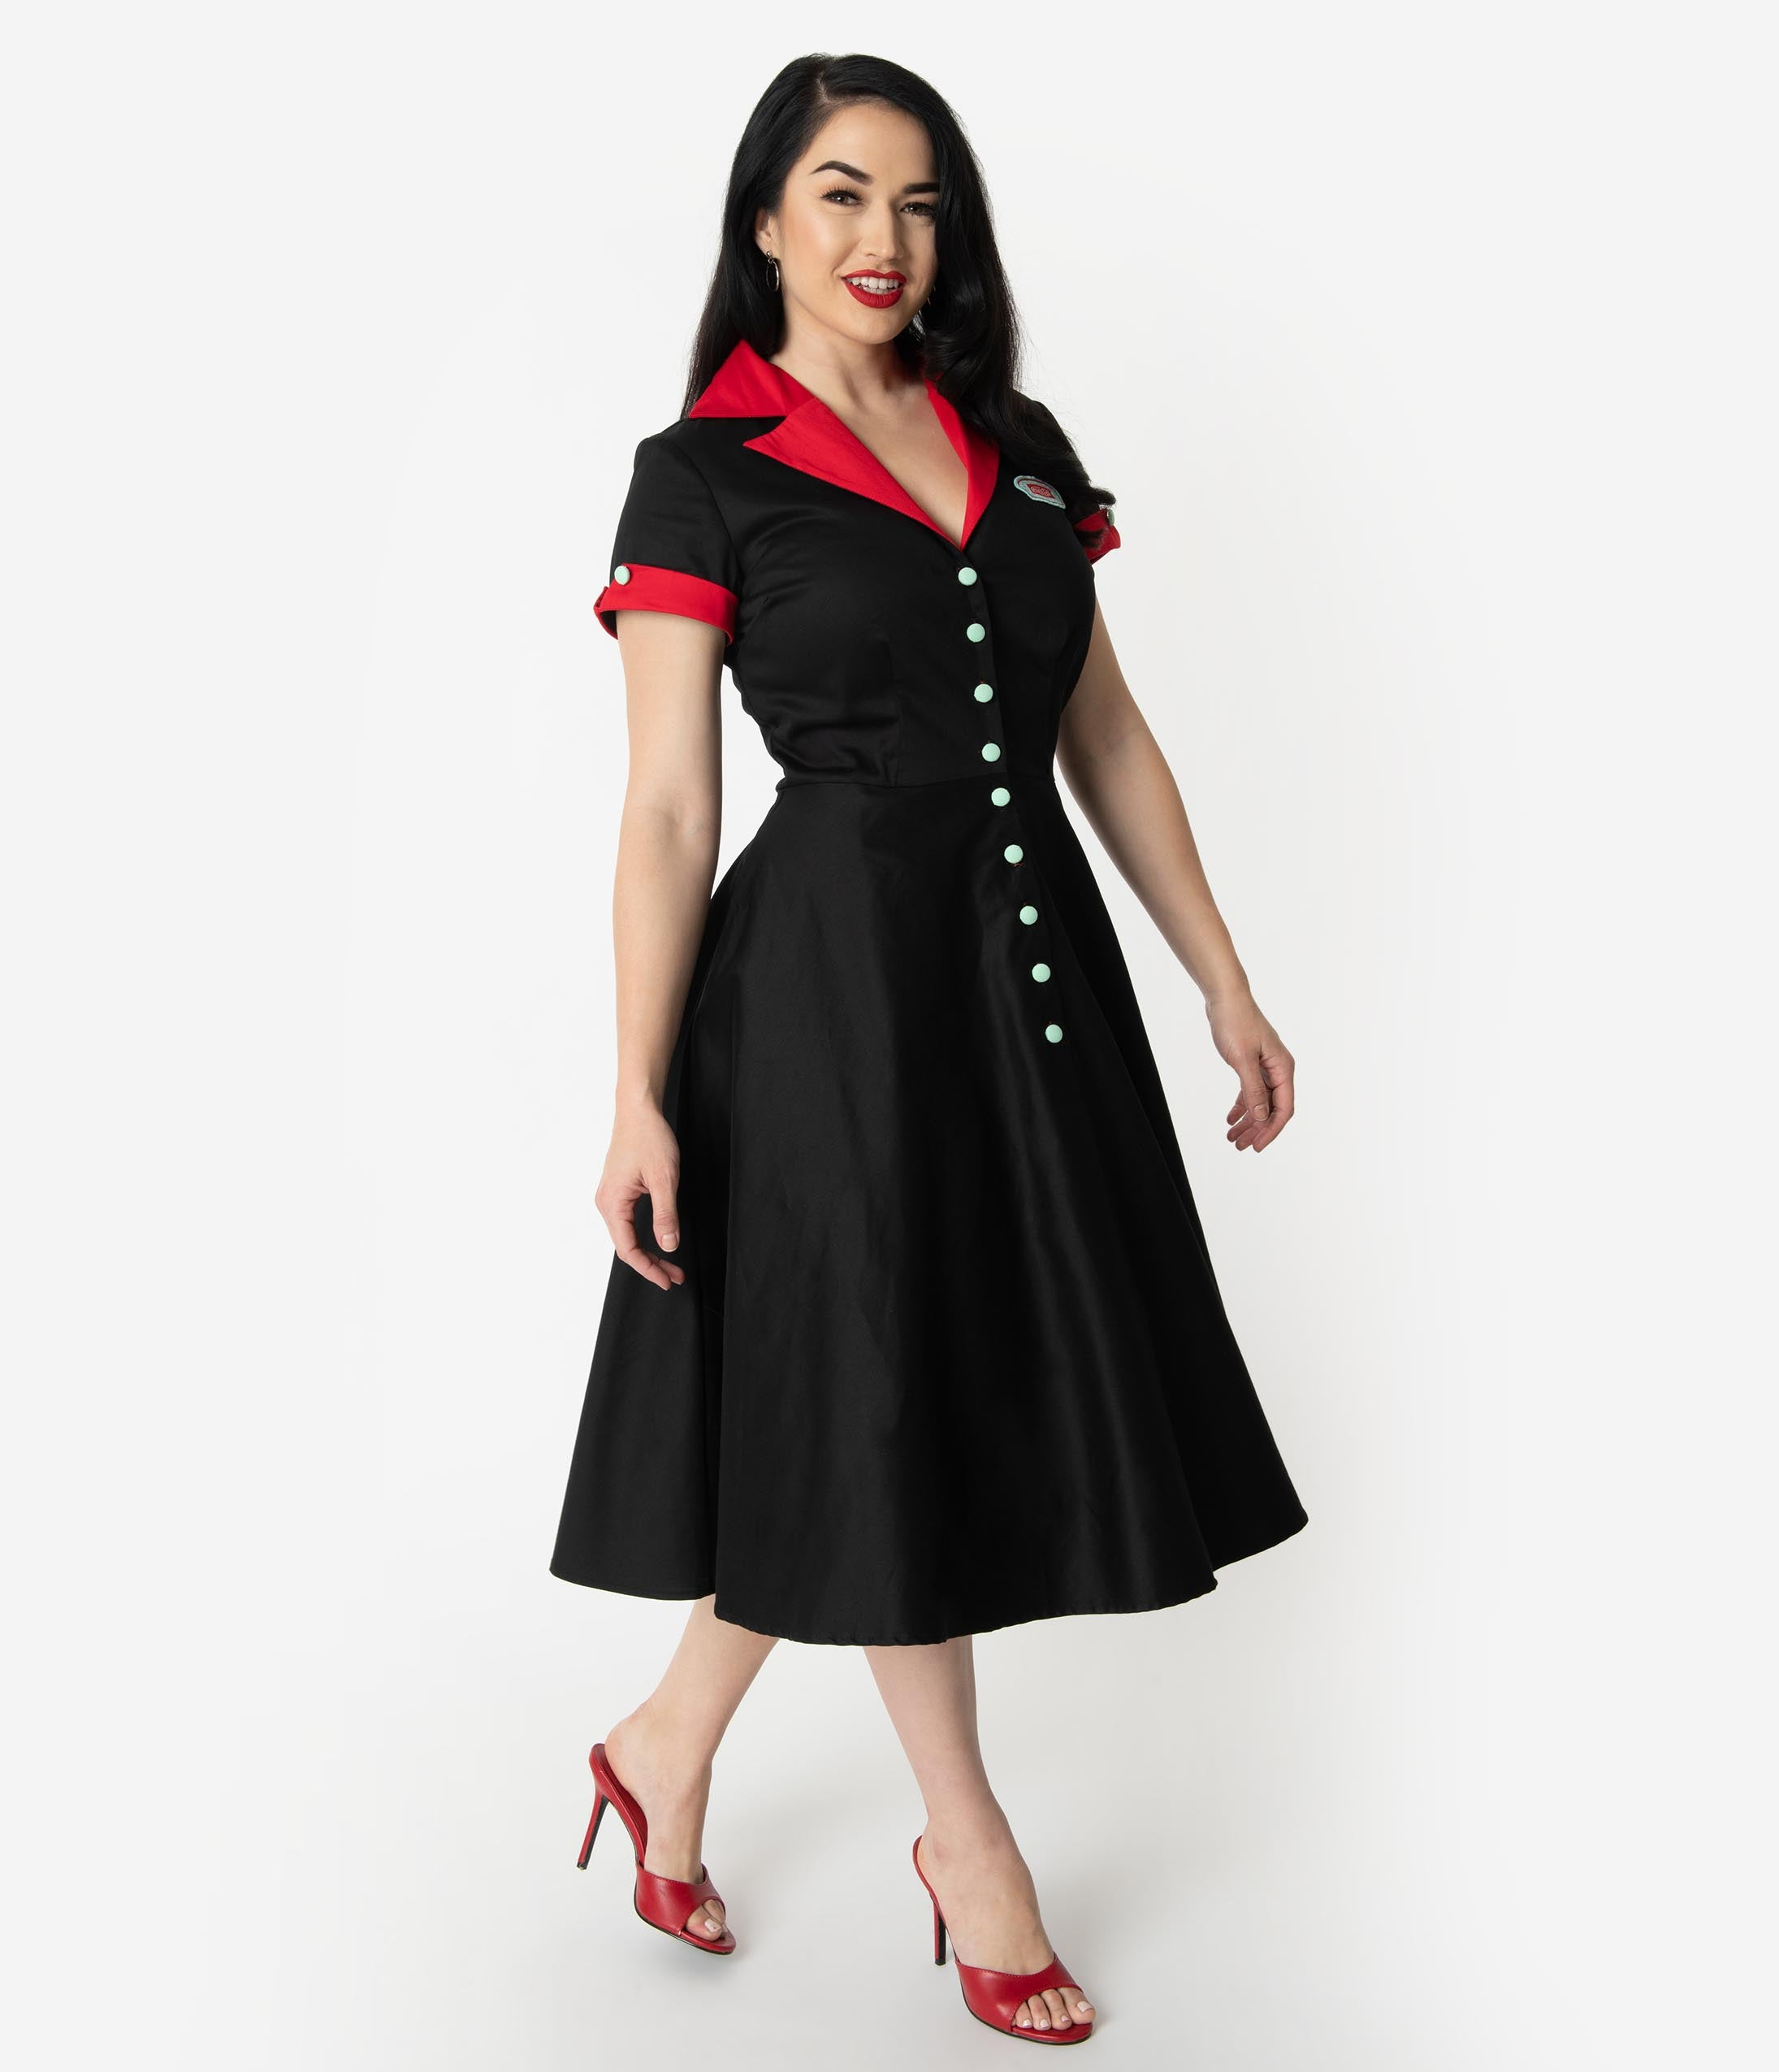 1950s Costumes- Poodle Skirts, Grease, Monroe, Pin Up, I Love Lucy Coca-Cola Collection By Unique Vintage 1950S Black  Red Fizzy Swing Diner Dress $118.00 AT vintagedancer.com